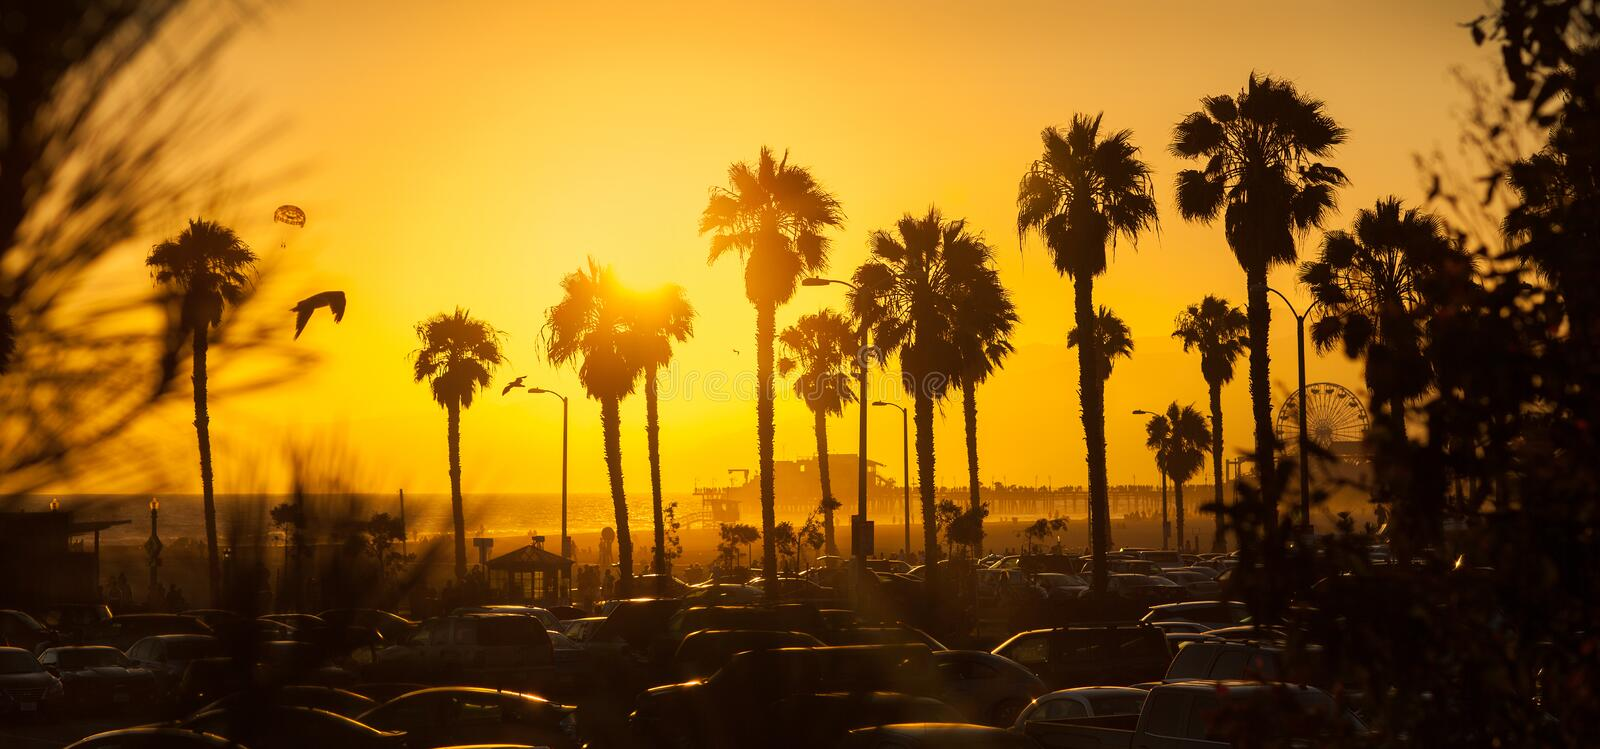 Gorgeous golden sunset at Los Angeles beach royalty free stock images